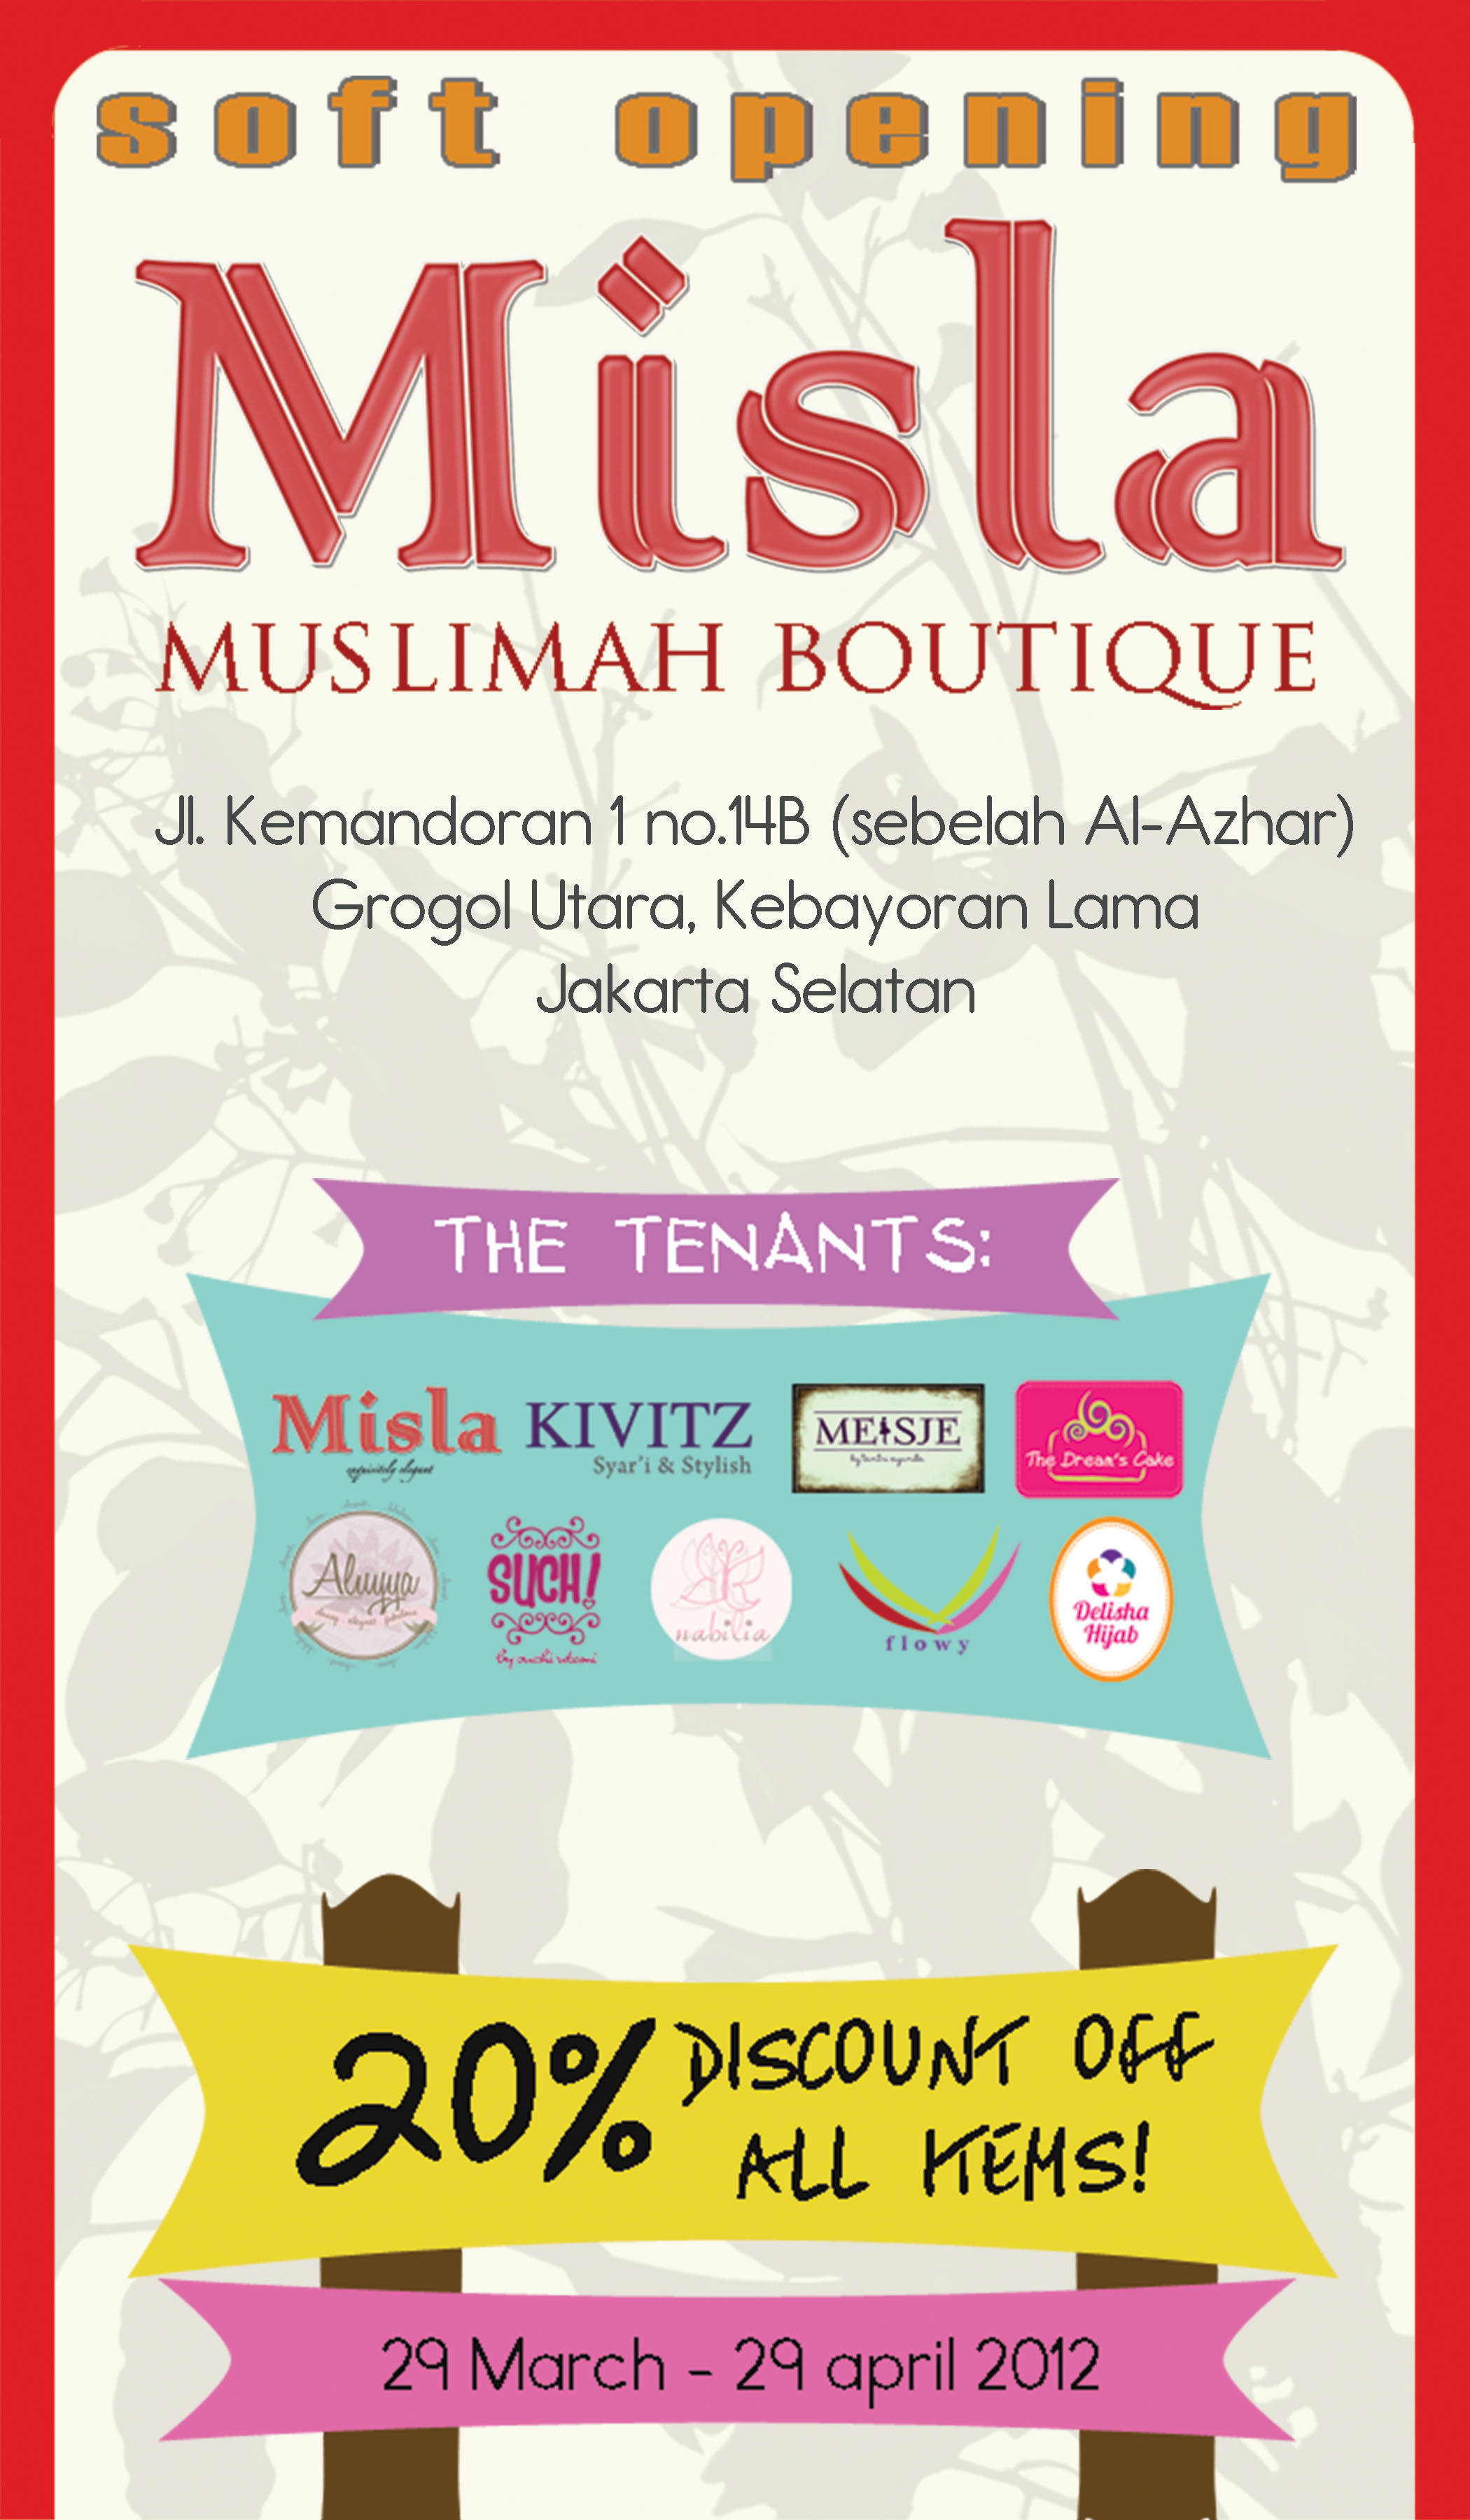 soft-opening-kecil-copy-copy MISLA muslimah boutique: Soft Opening